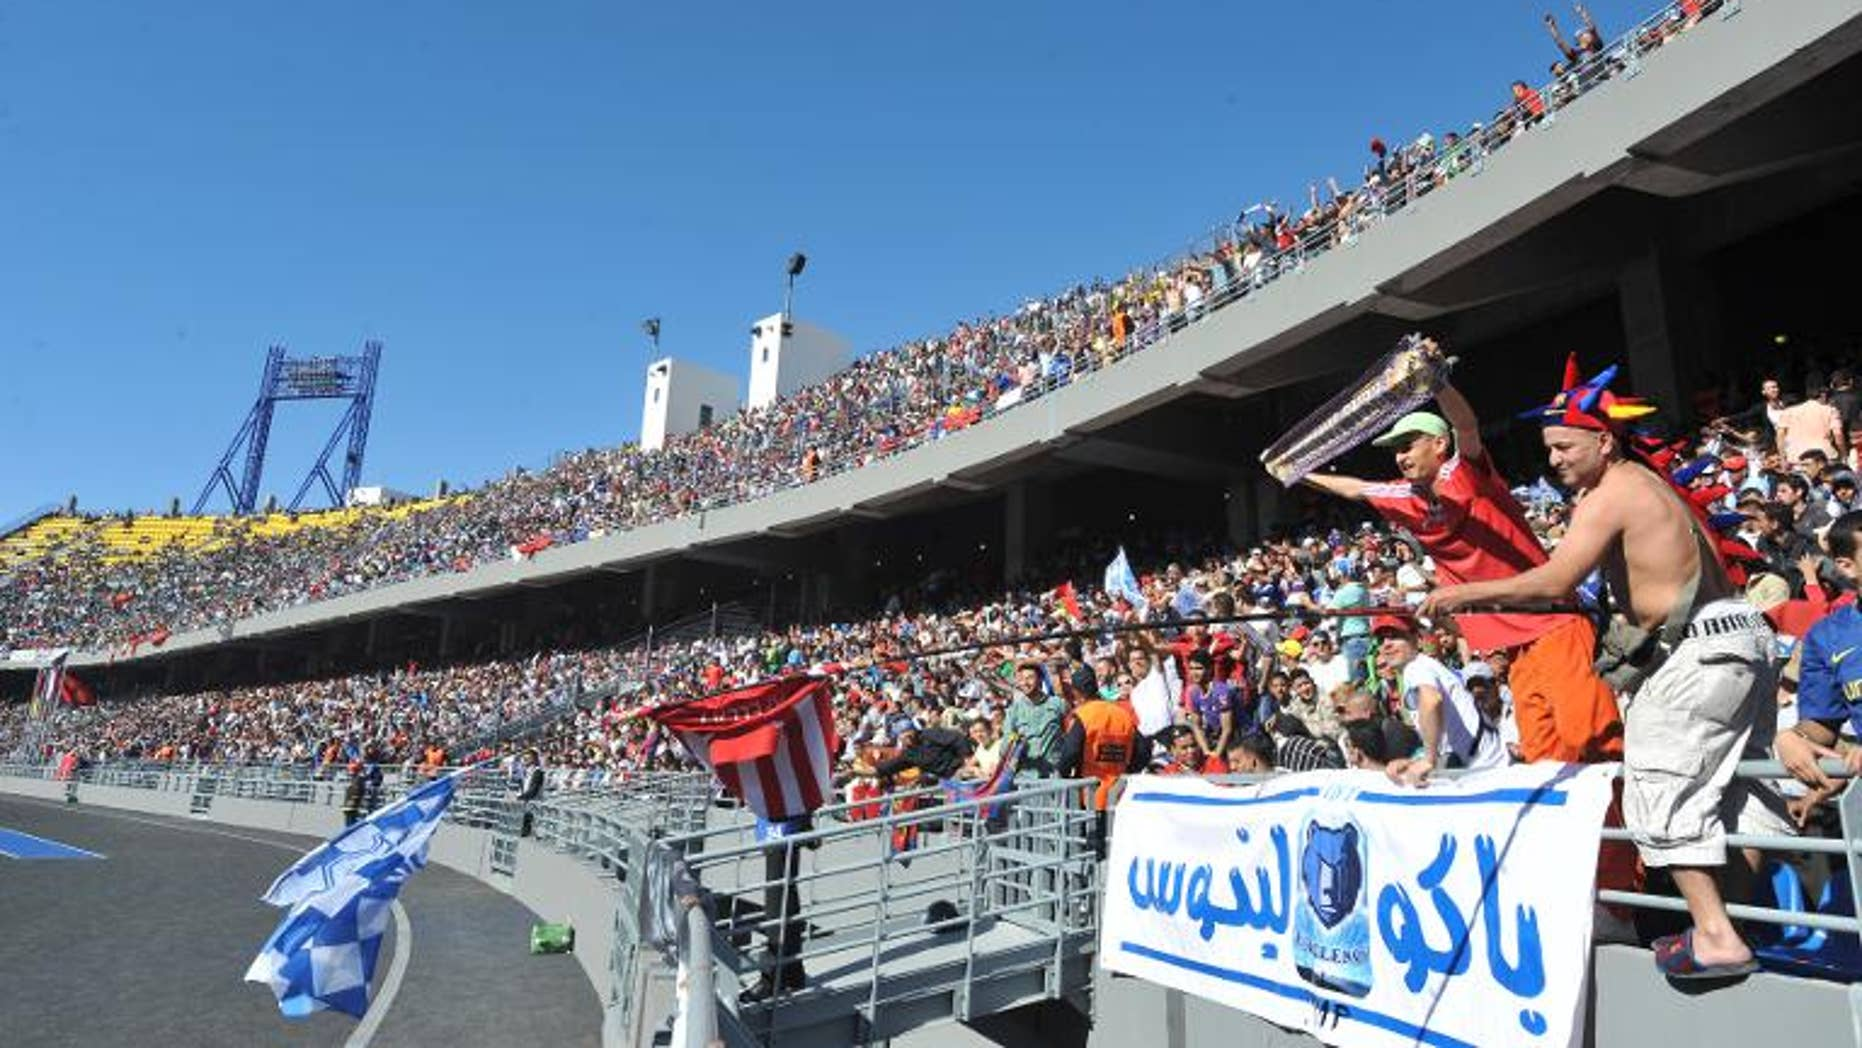 Supporters watch Athletico Madrid play Raja de Casablanca Tangier stadium on April 26, 2011